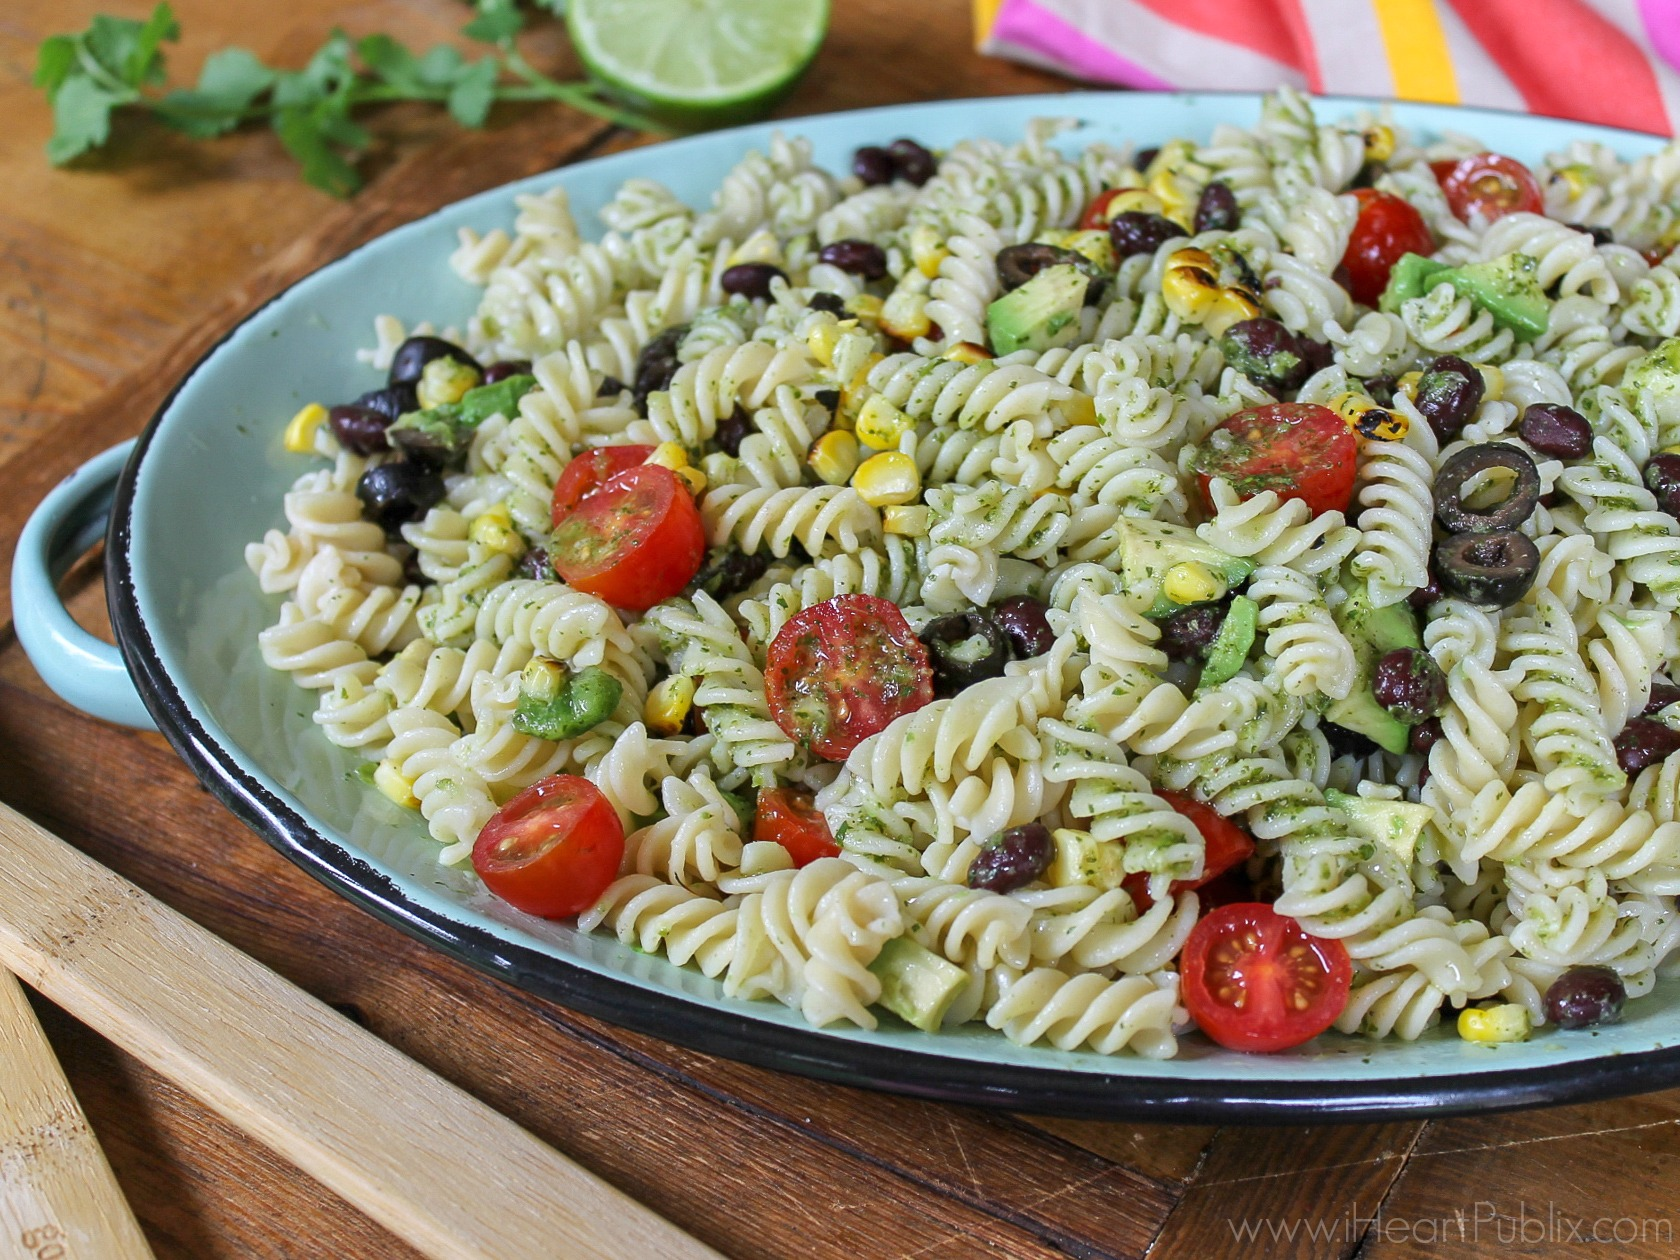 Get Savings On Ronzoni® Gluten Free Pasta At Your Local ...